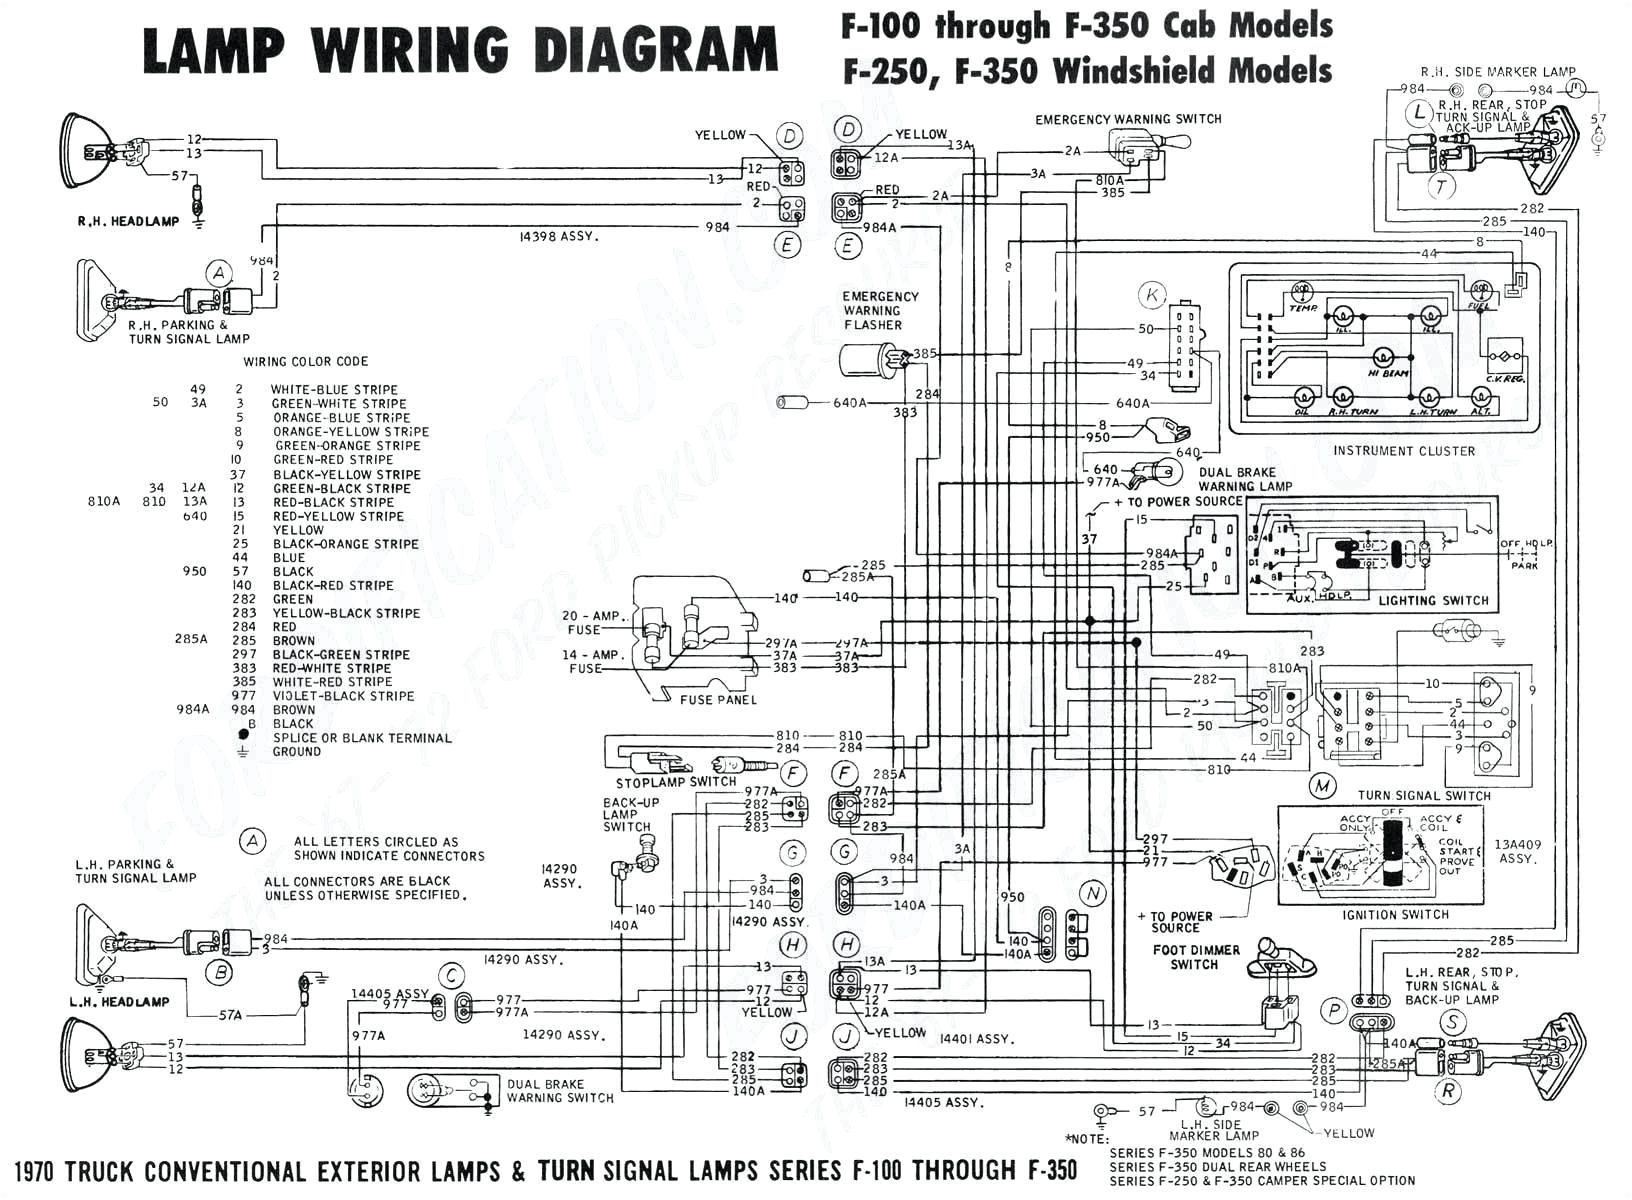 2004 chevy trailblazer engine diagram car tuning wiring diagram page car wiring diagrams trailerblazer 2002 4 2